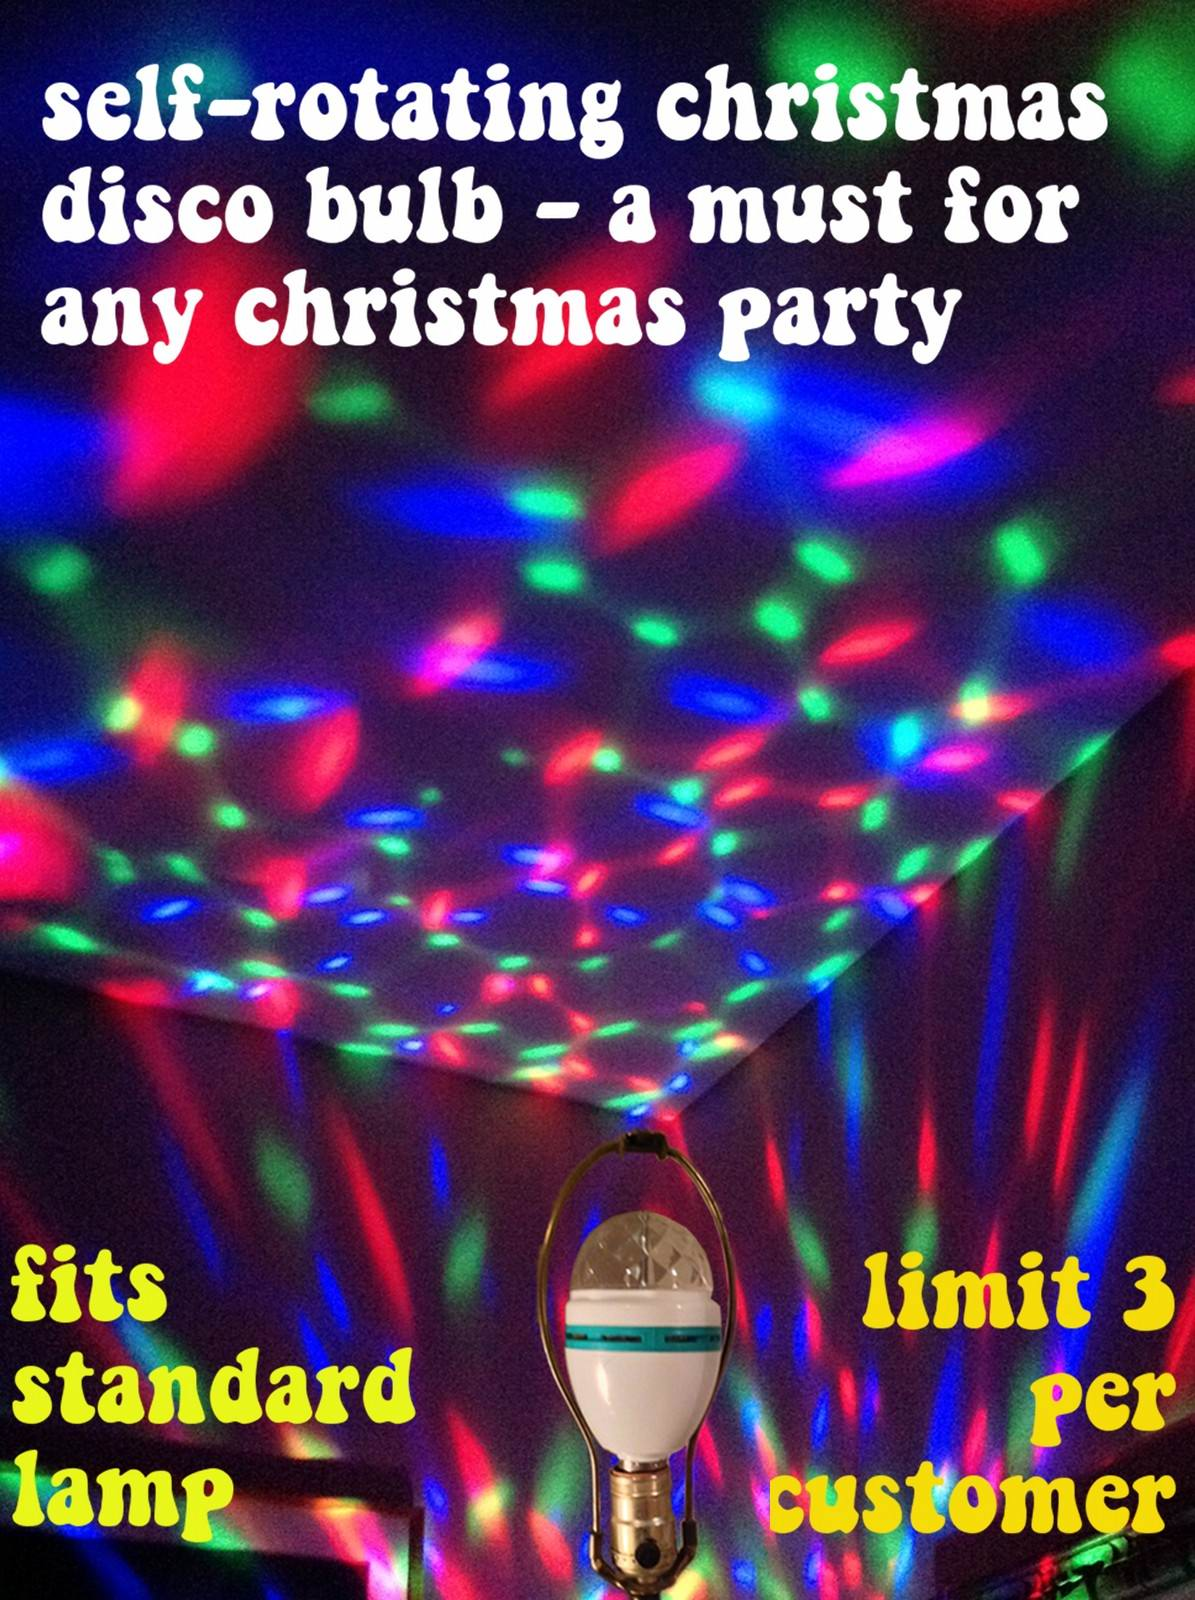 Nineties Home Decor Accessories Christmas Party Lightup Rotating